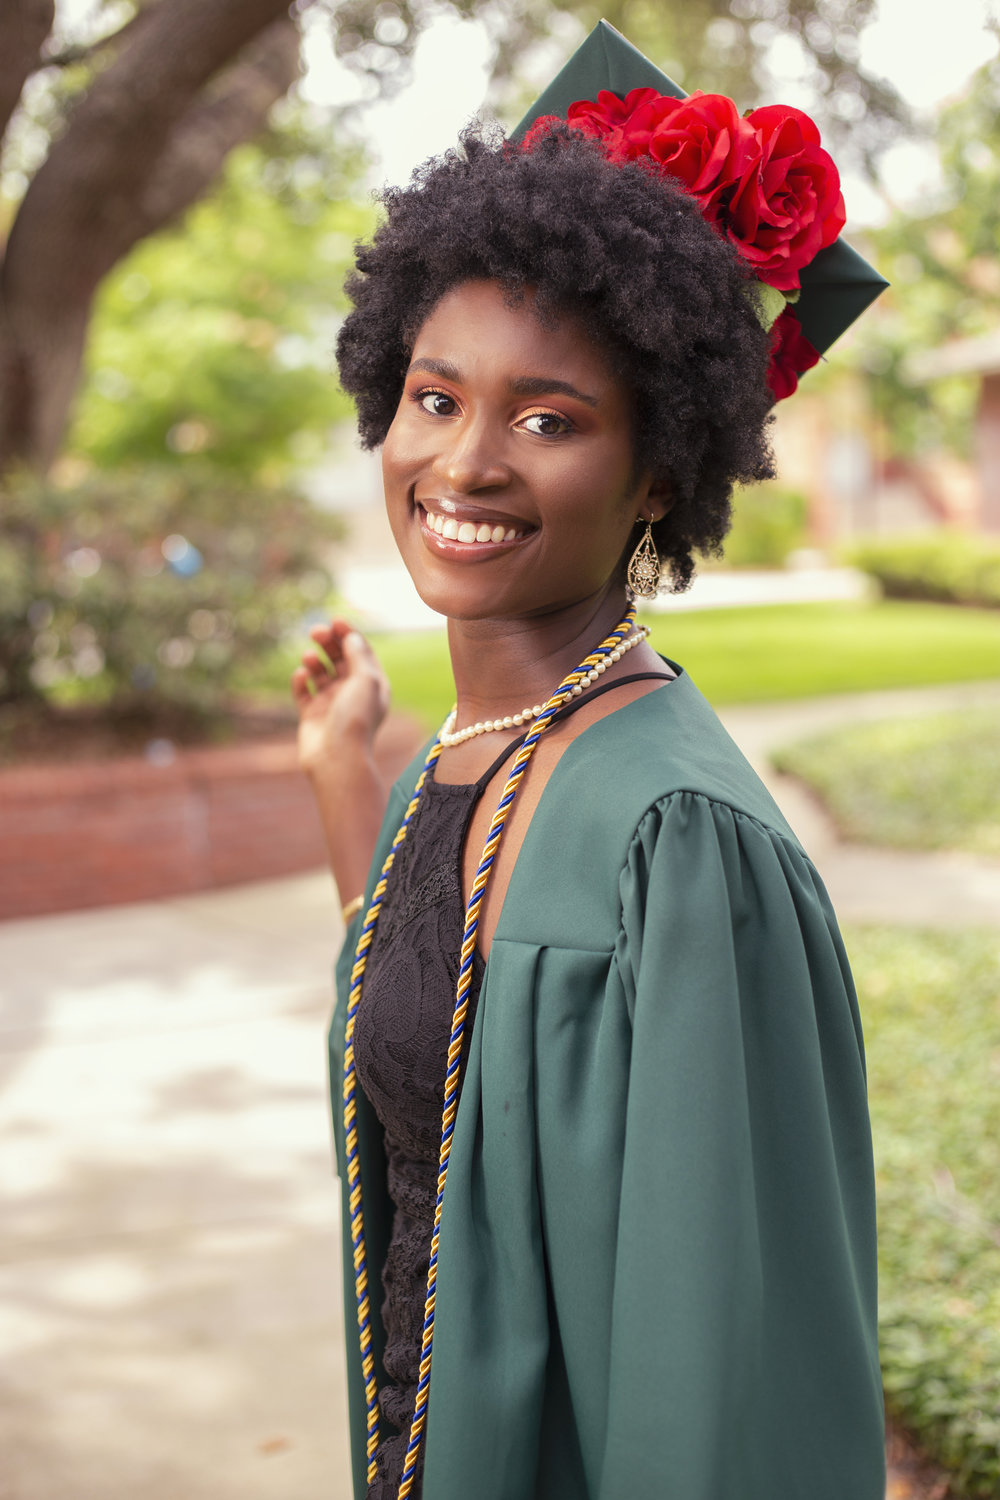 graduation-photoshoot-stetson-university-chamber-photography-3.jpg